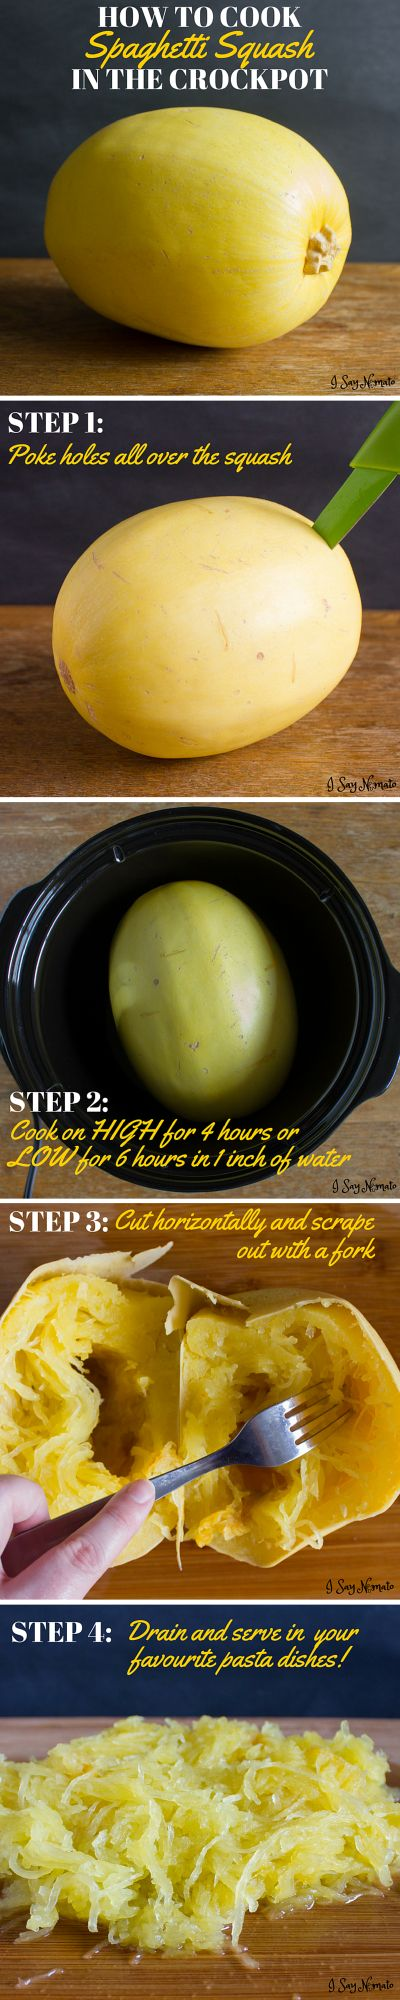 How To Cook a Spaghetti Squash in the Slow Cooker